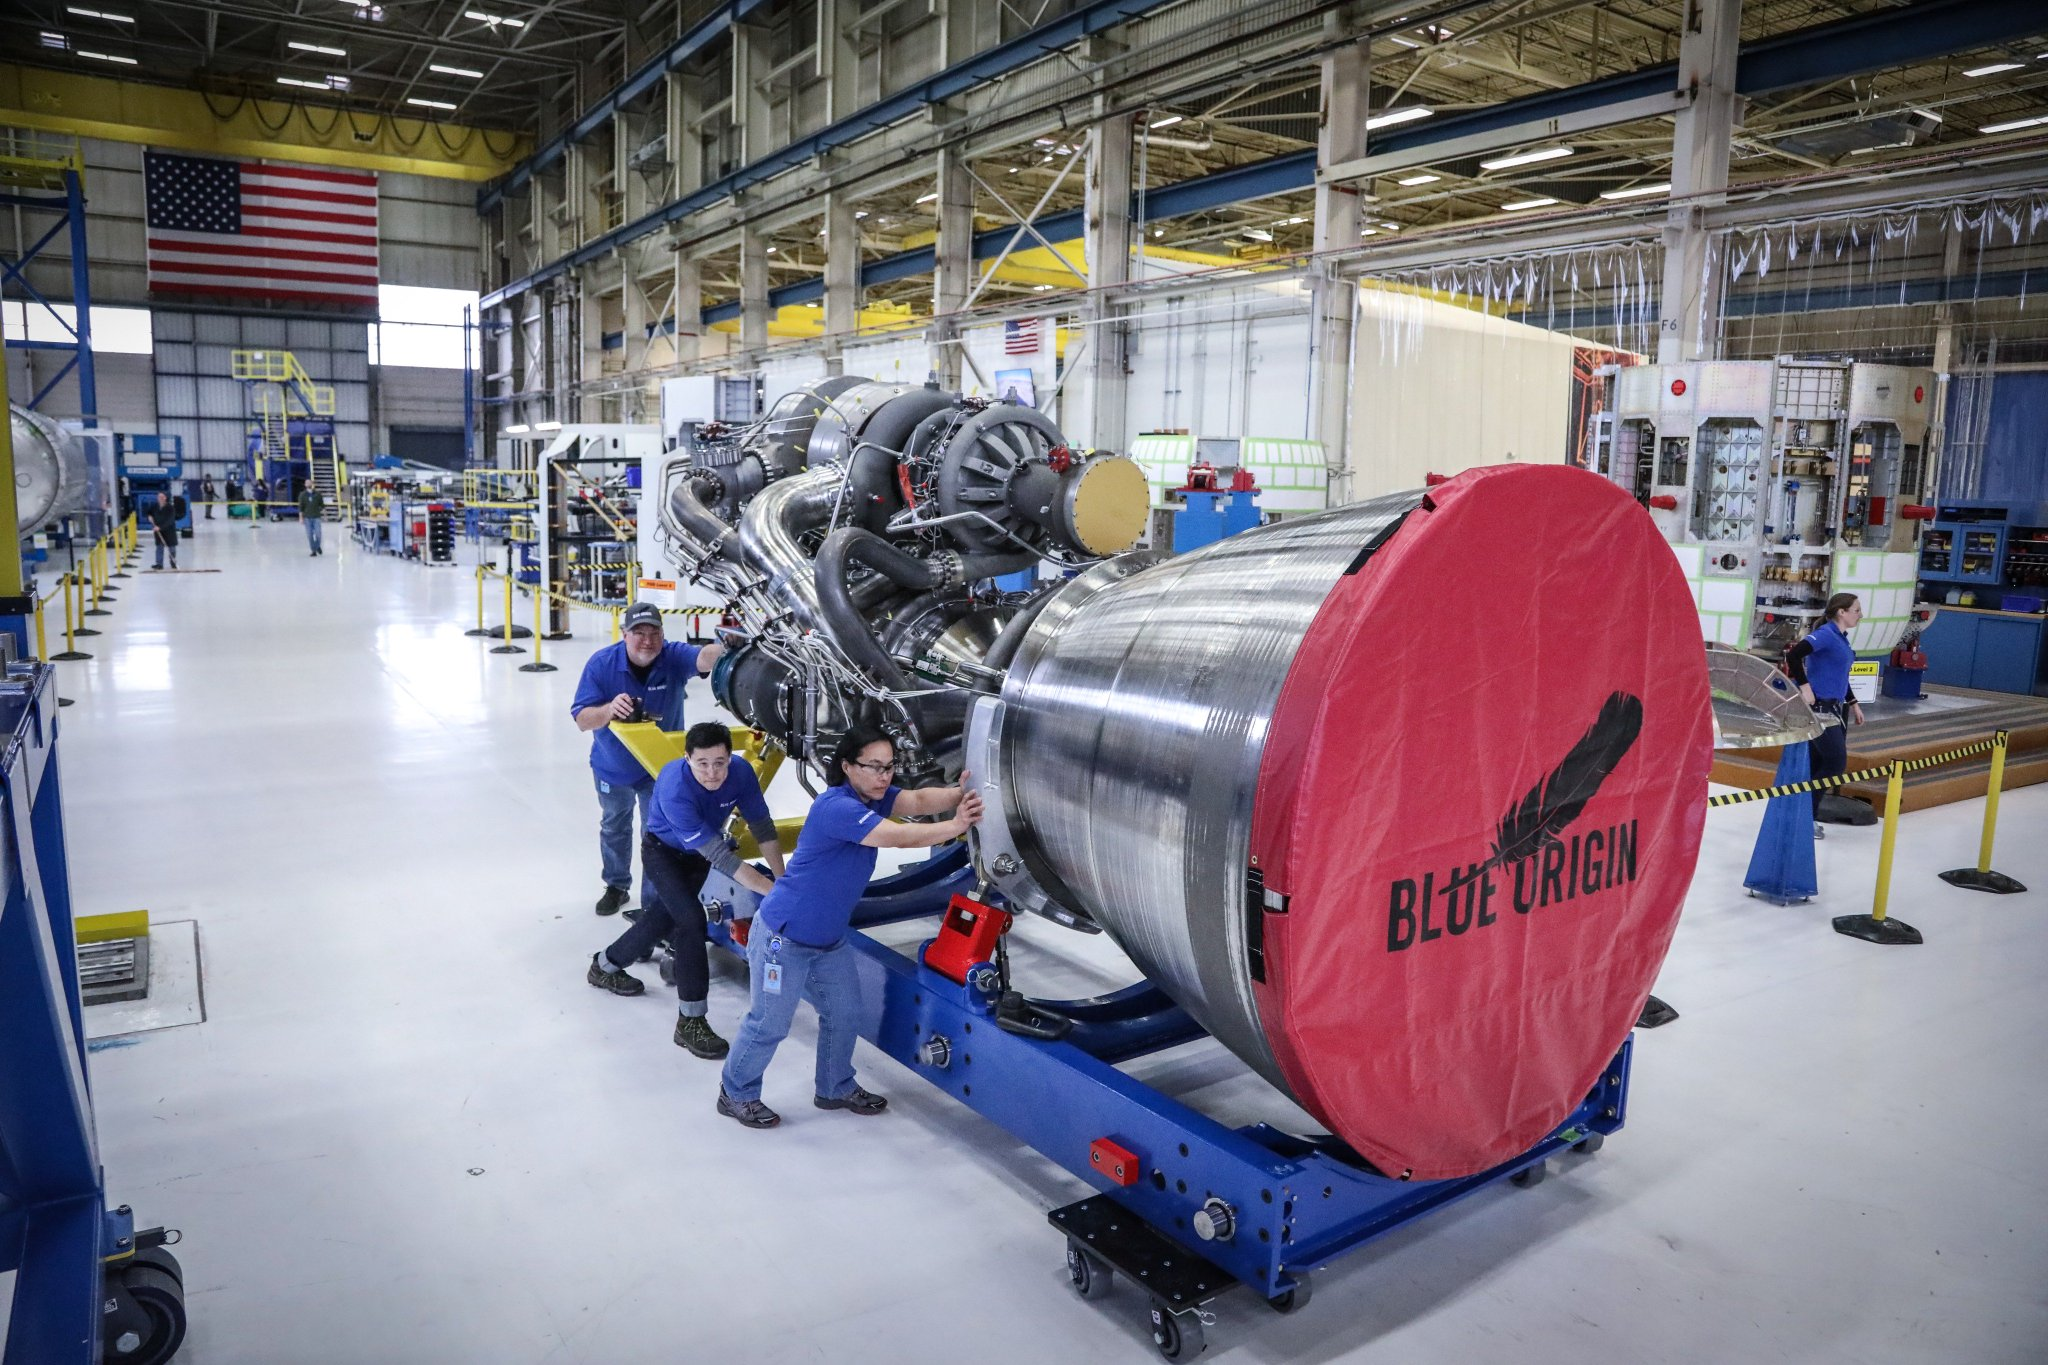 AR1's competition, the BE-4 rocket engine developed by Blue Origin. Photo via Jeff Bezos/Blue Origin.